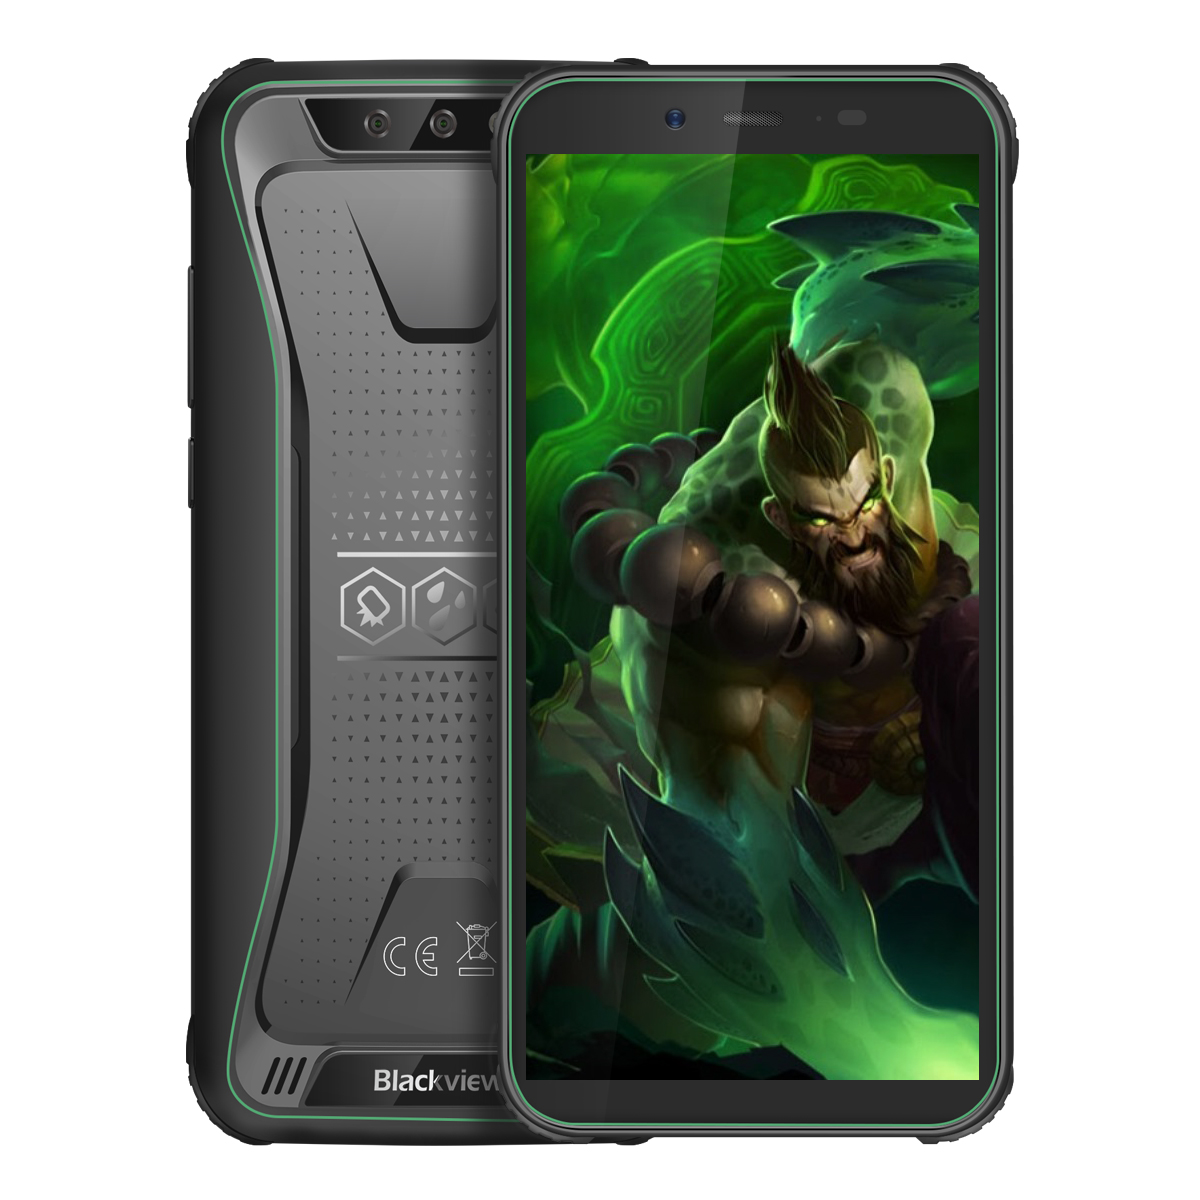 Blackview BV5500 Pro 3+16GB 4G Phone Green